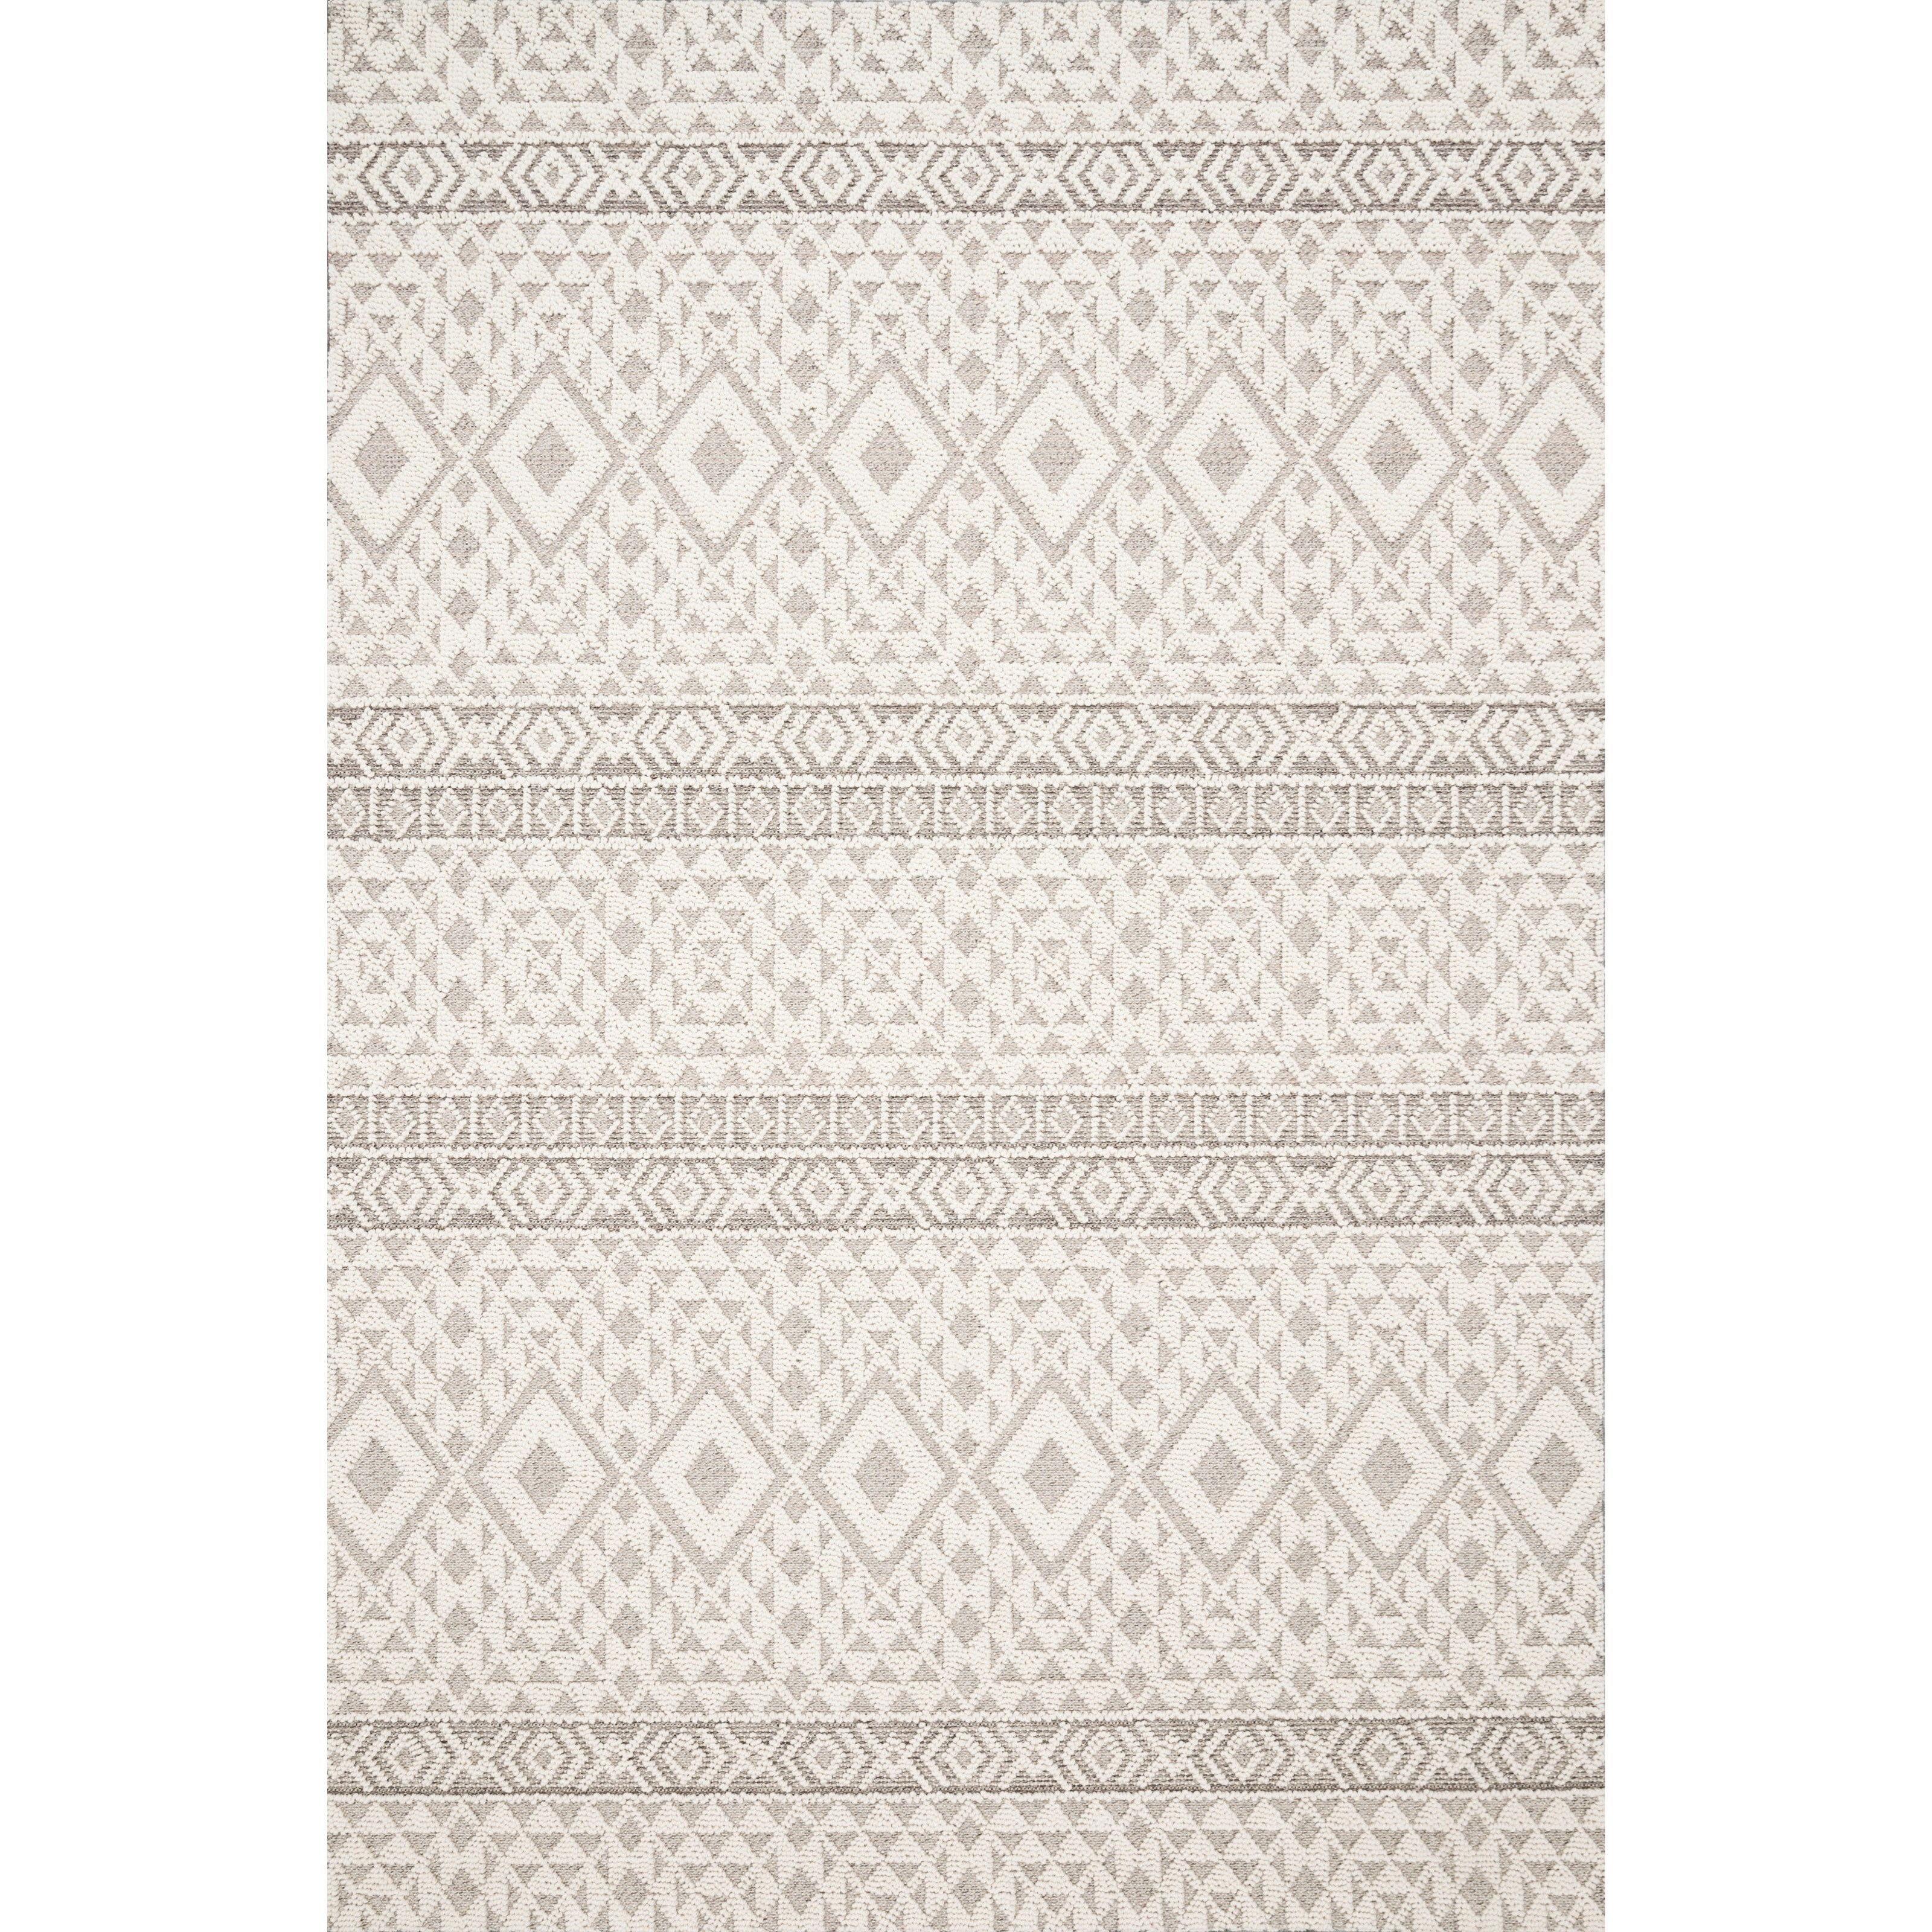 "Cole 6'7"" x 9'4"" Silver / Ivory Rug by Loloi Rugs at Sprintz Furniture"